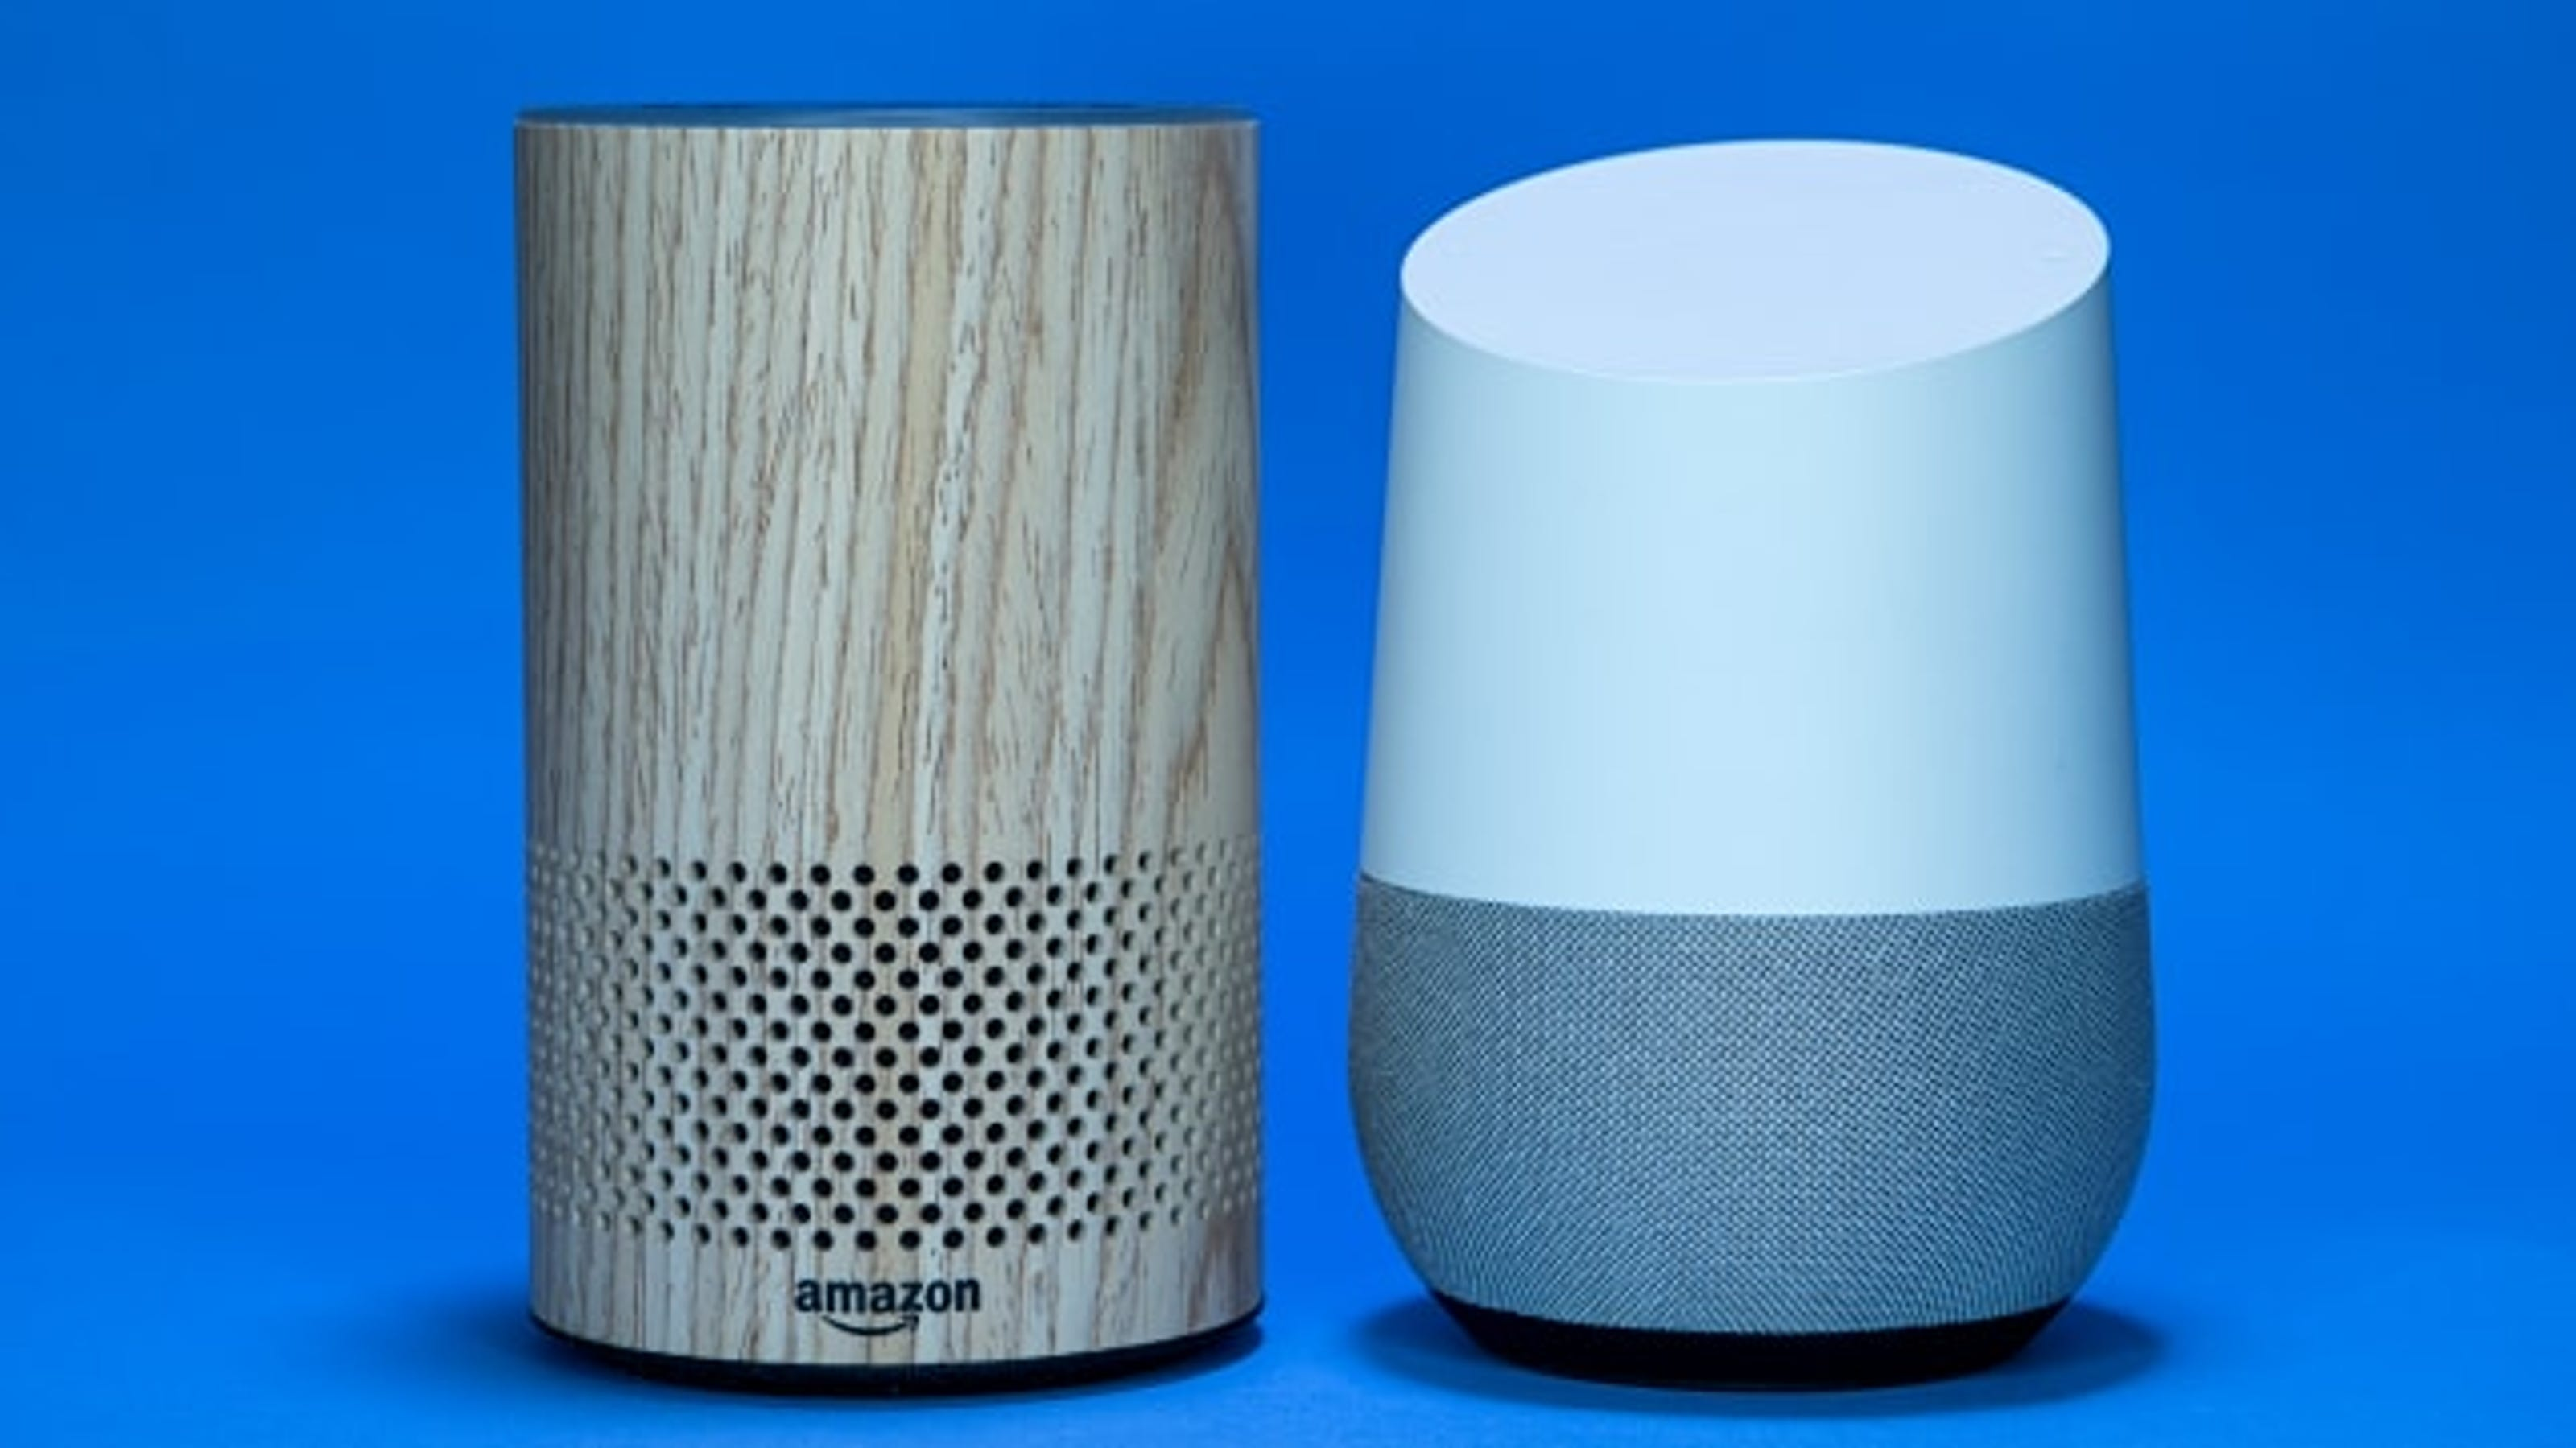 Google Home outships Amazon Echo for second quarter in row